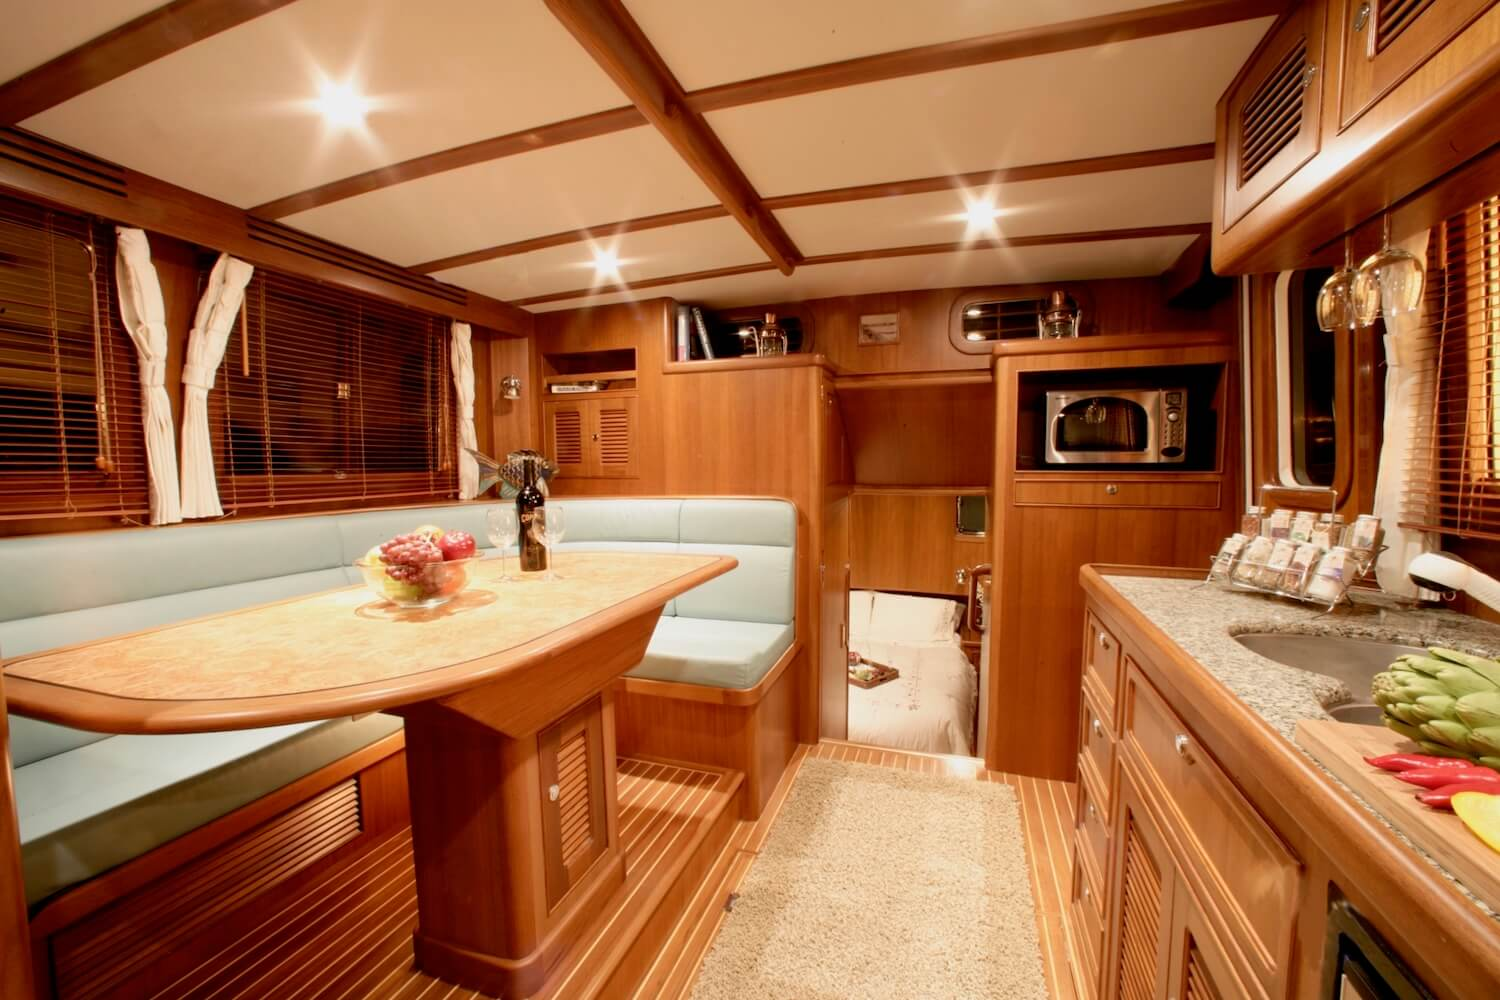 The Biggest 38 Family Aft Cabin Cruiser In The World